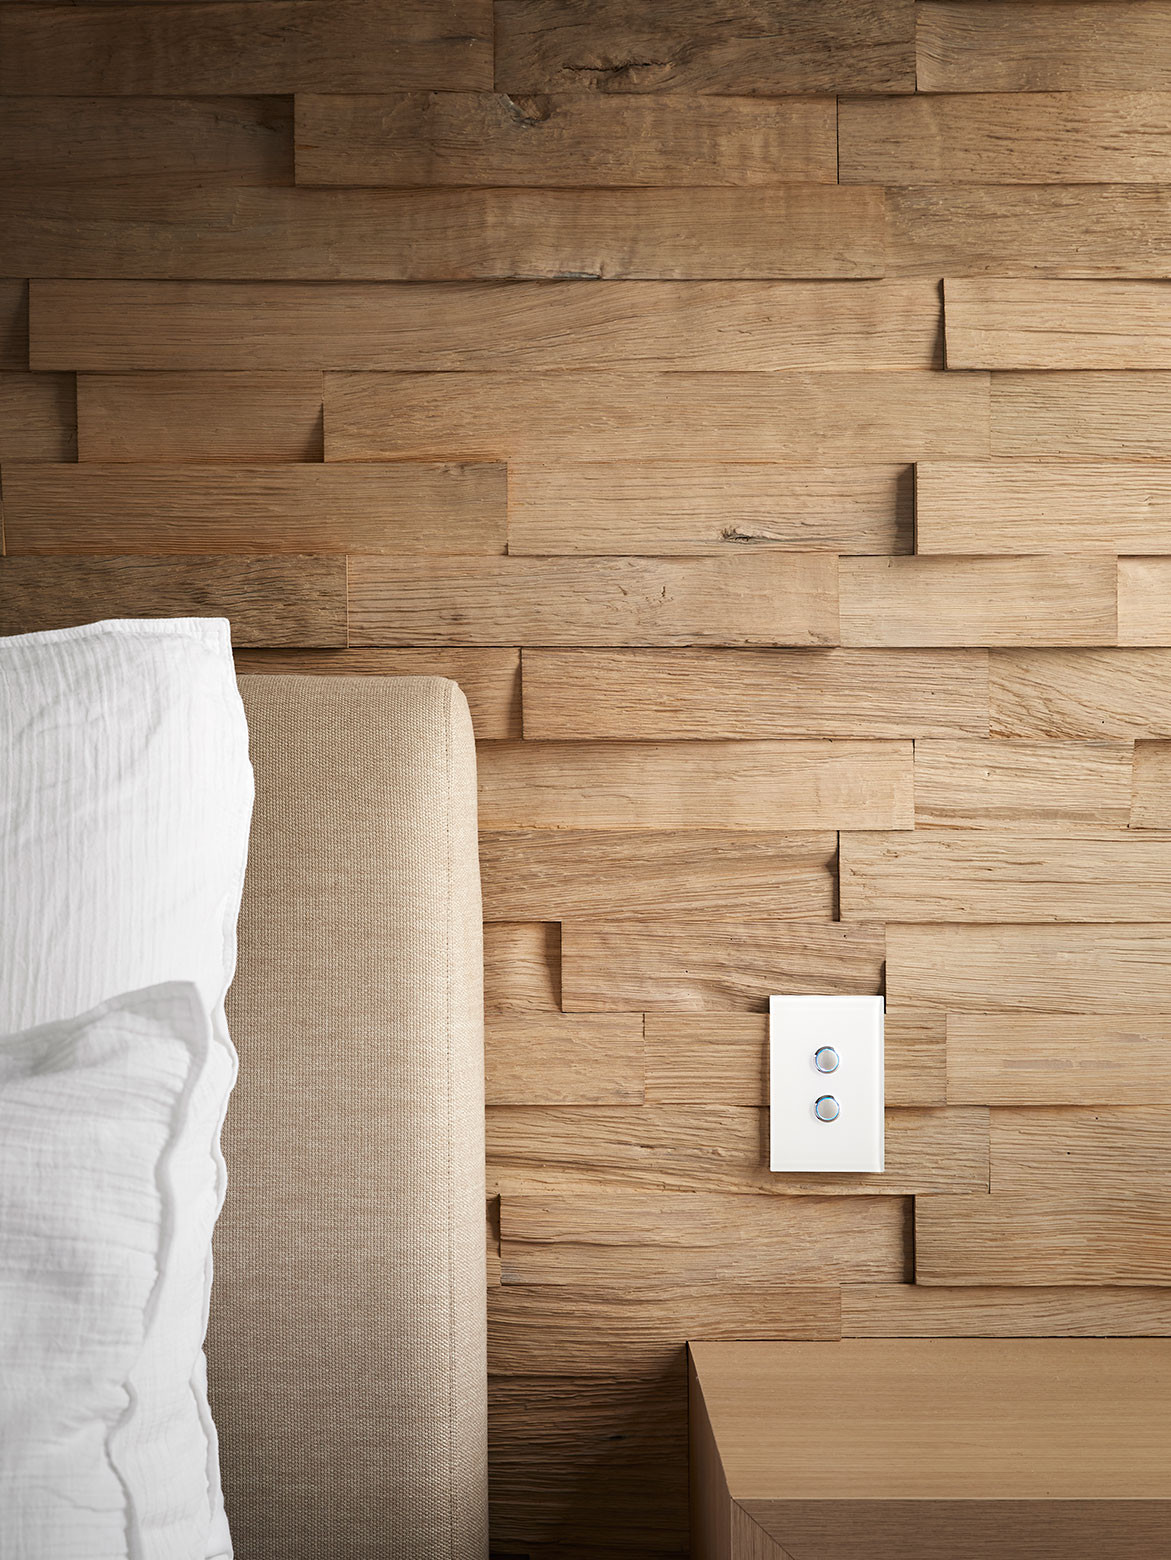 Earp Bros x Webber Architects cc Alexander McIntyre Photography | Wood Wall Pure